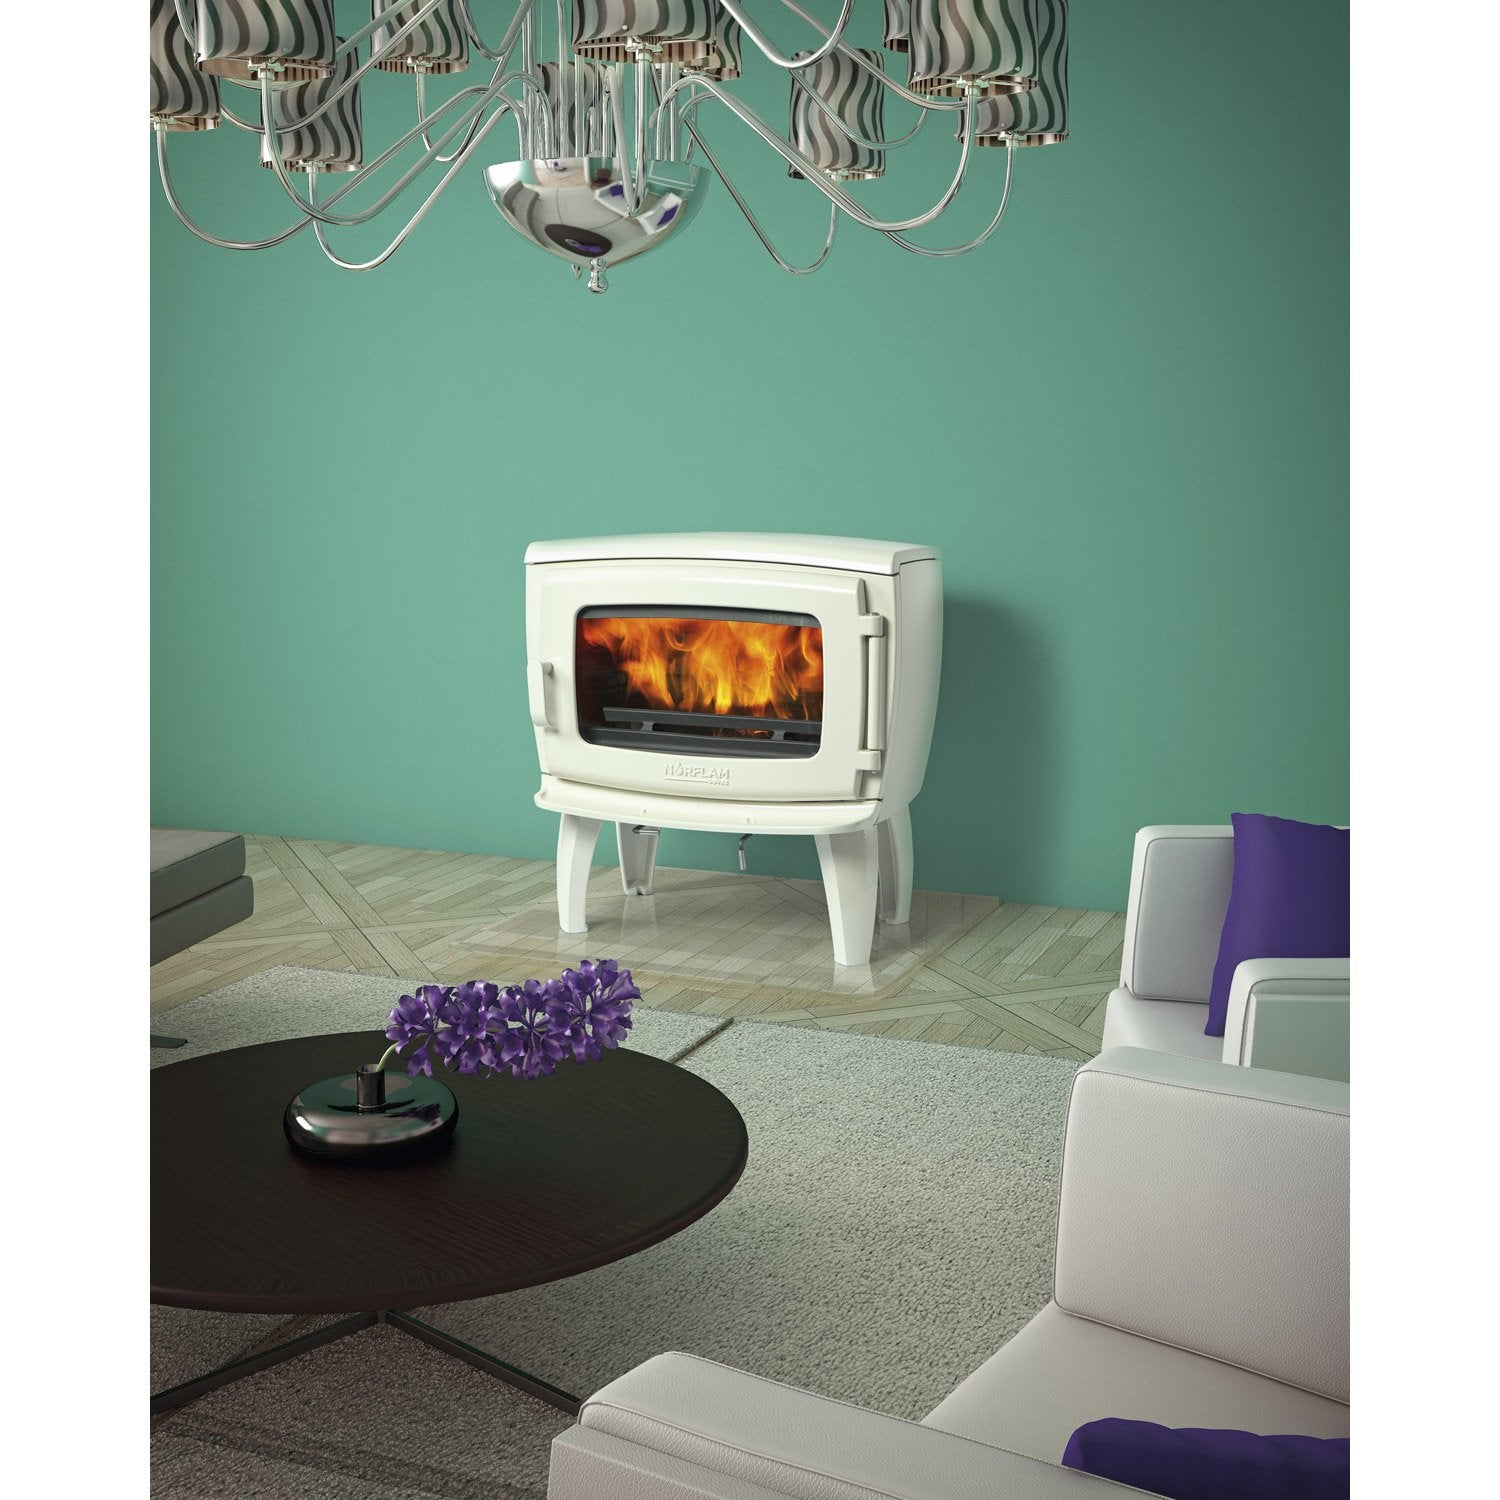 po le bois norflam by dovre pr lude emaill blanc 9 kw leroy merlin. Black Bedroom Furniture Sets. Home Design Ideas